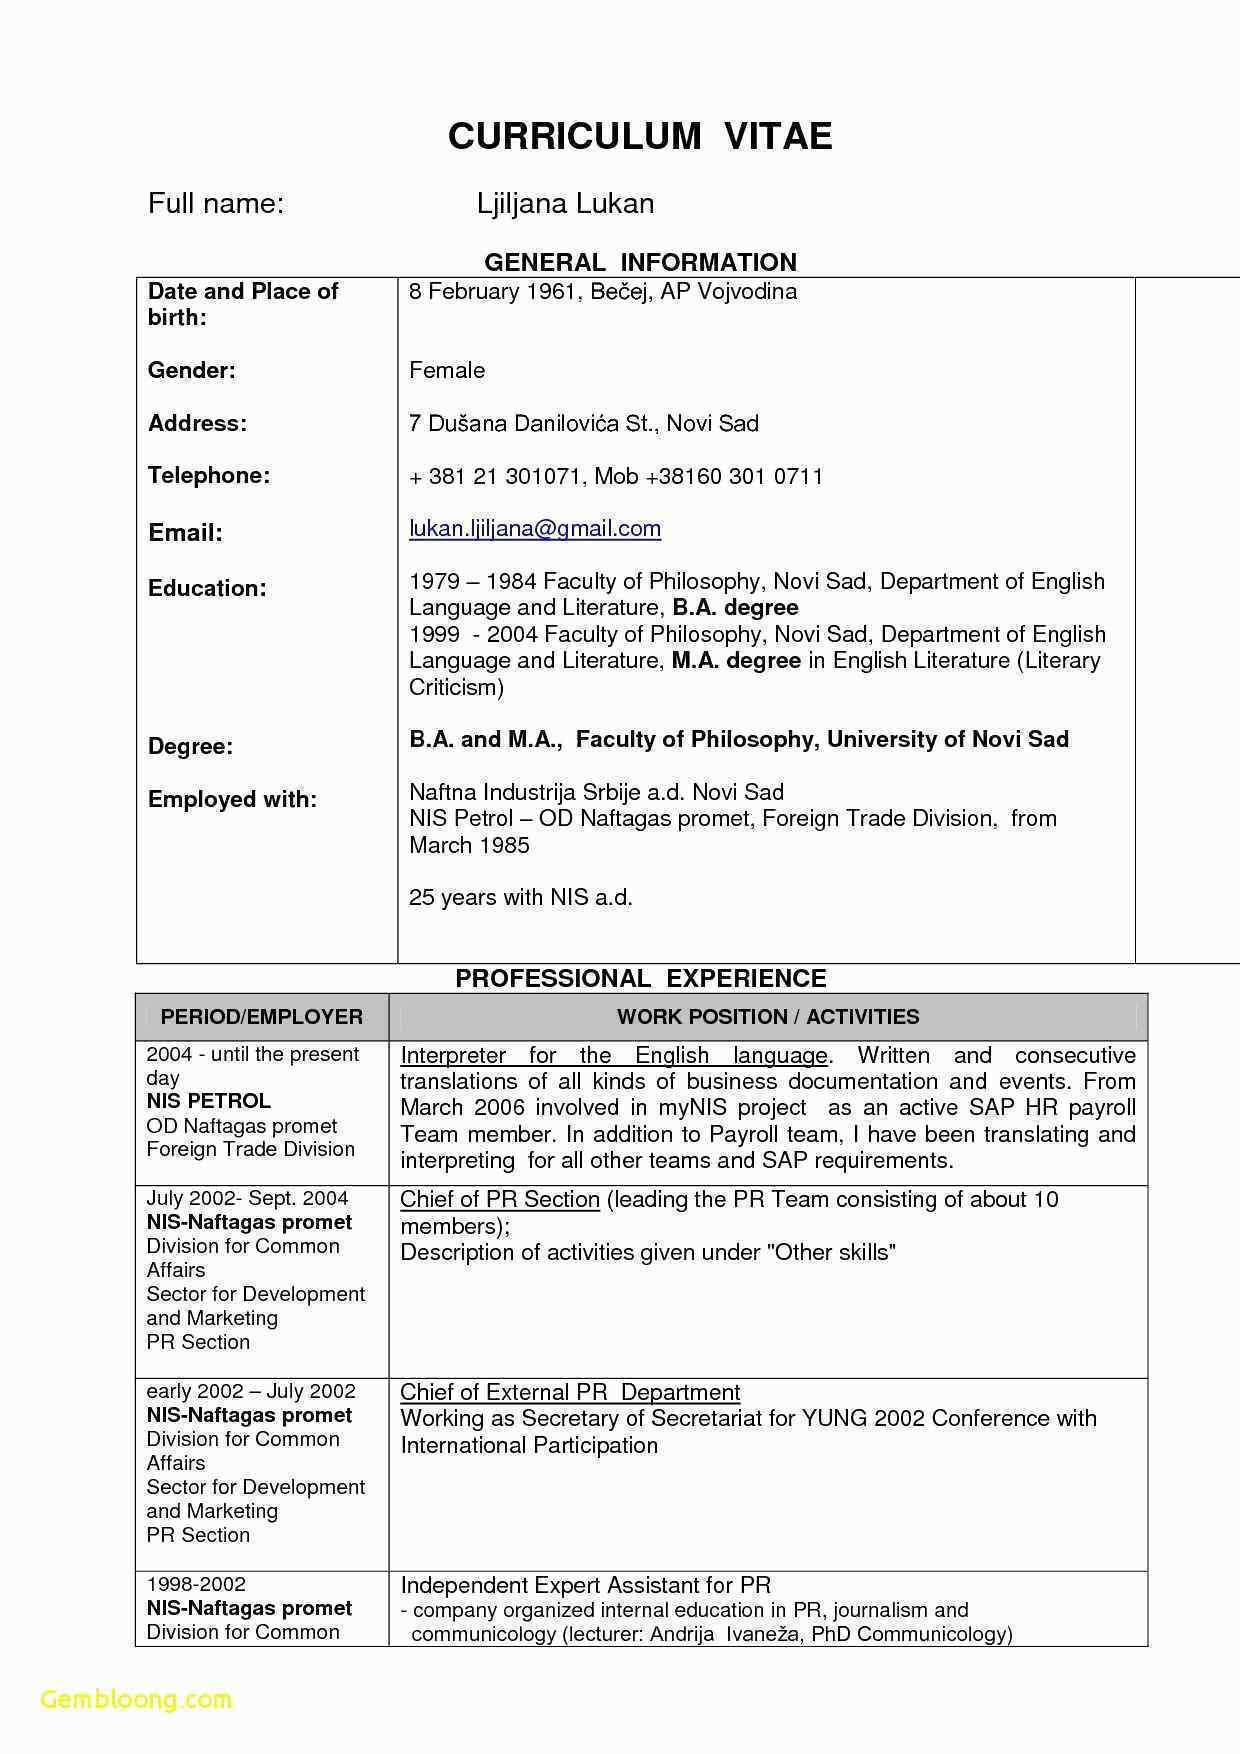 resume for law school application template example-law school application resume Lovely Resume format for Mba Student Lovely Mba Resume Template Create 9-n